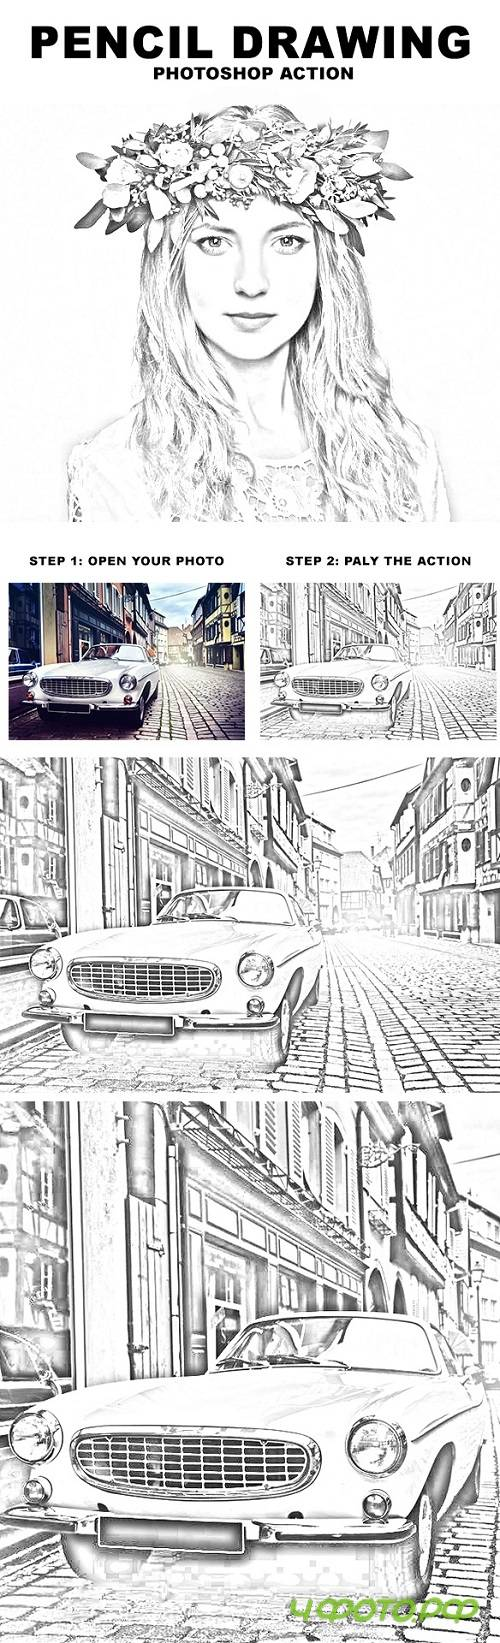 Pencil Drawing Photoshop Action 20133433